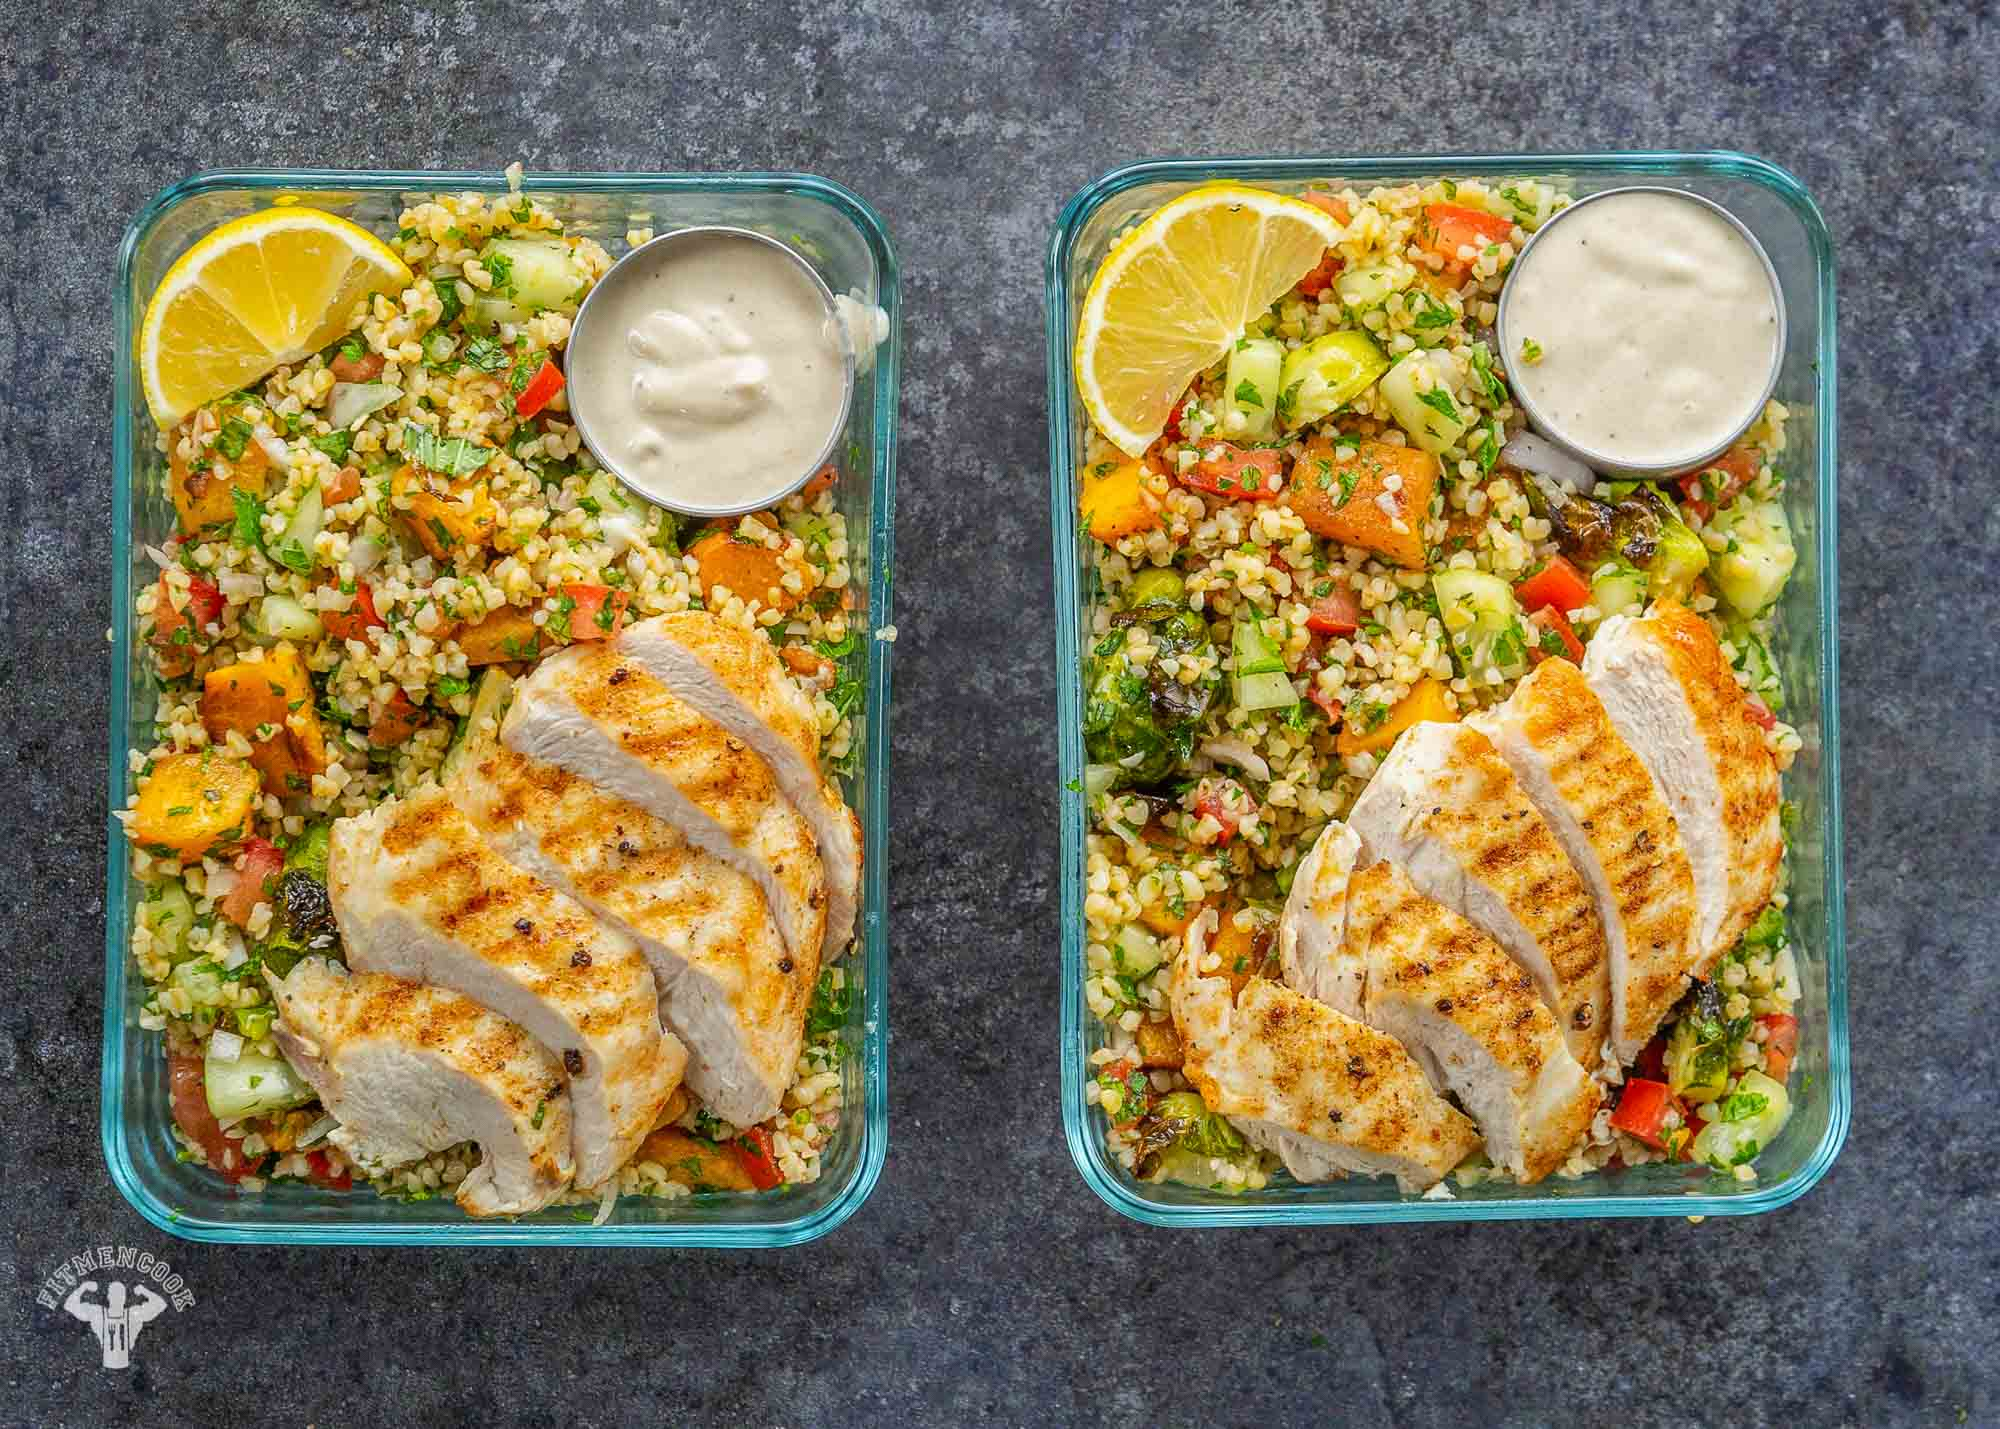 Chicken Tabbouleh with Roasted Veggies